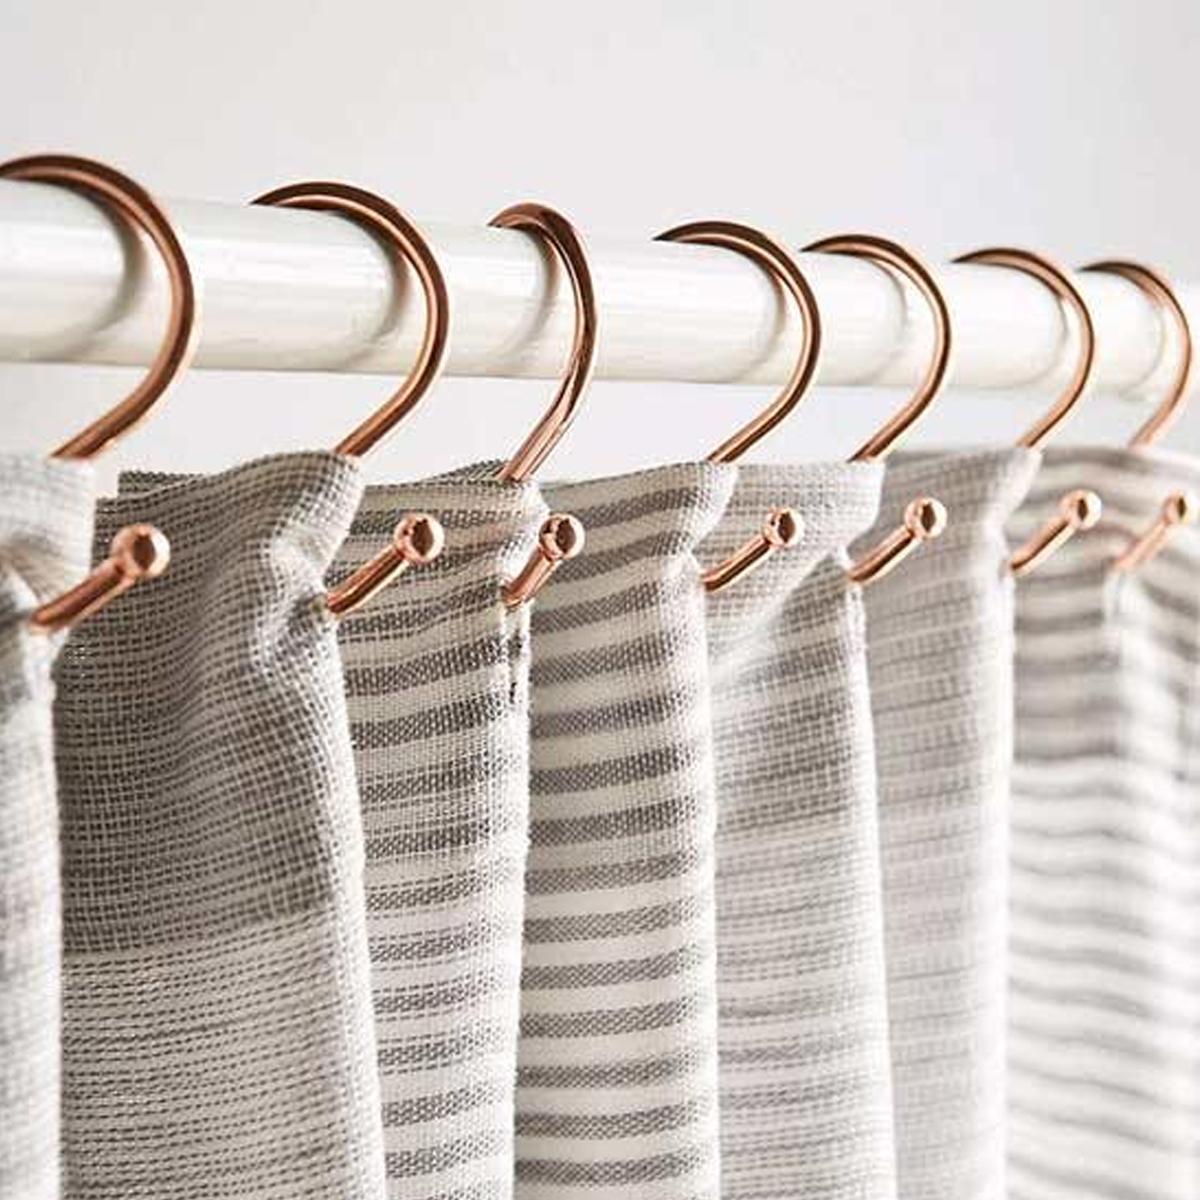 Copper shower hooks that will add a stylish touch to your bathroom. photo